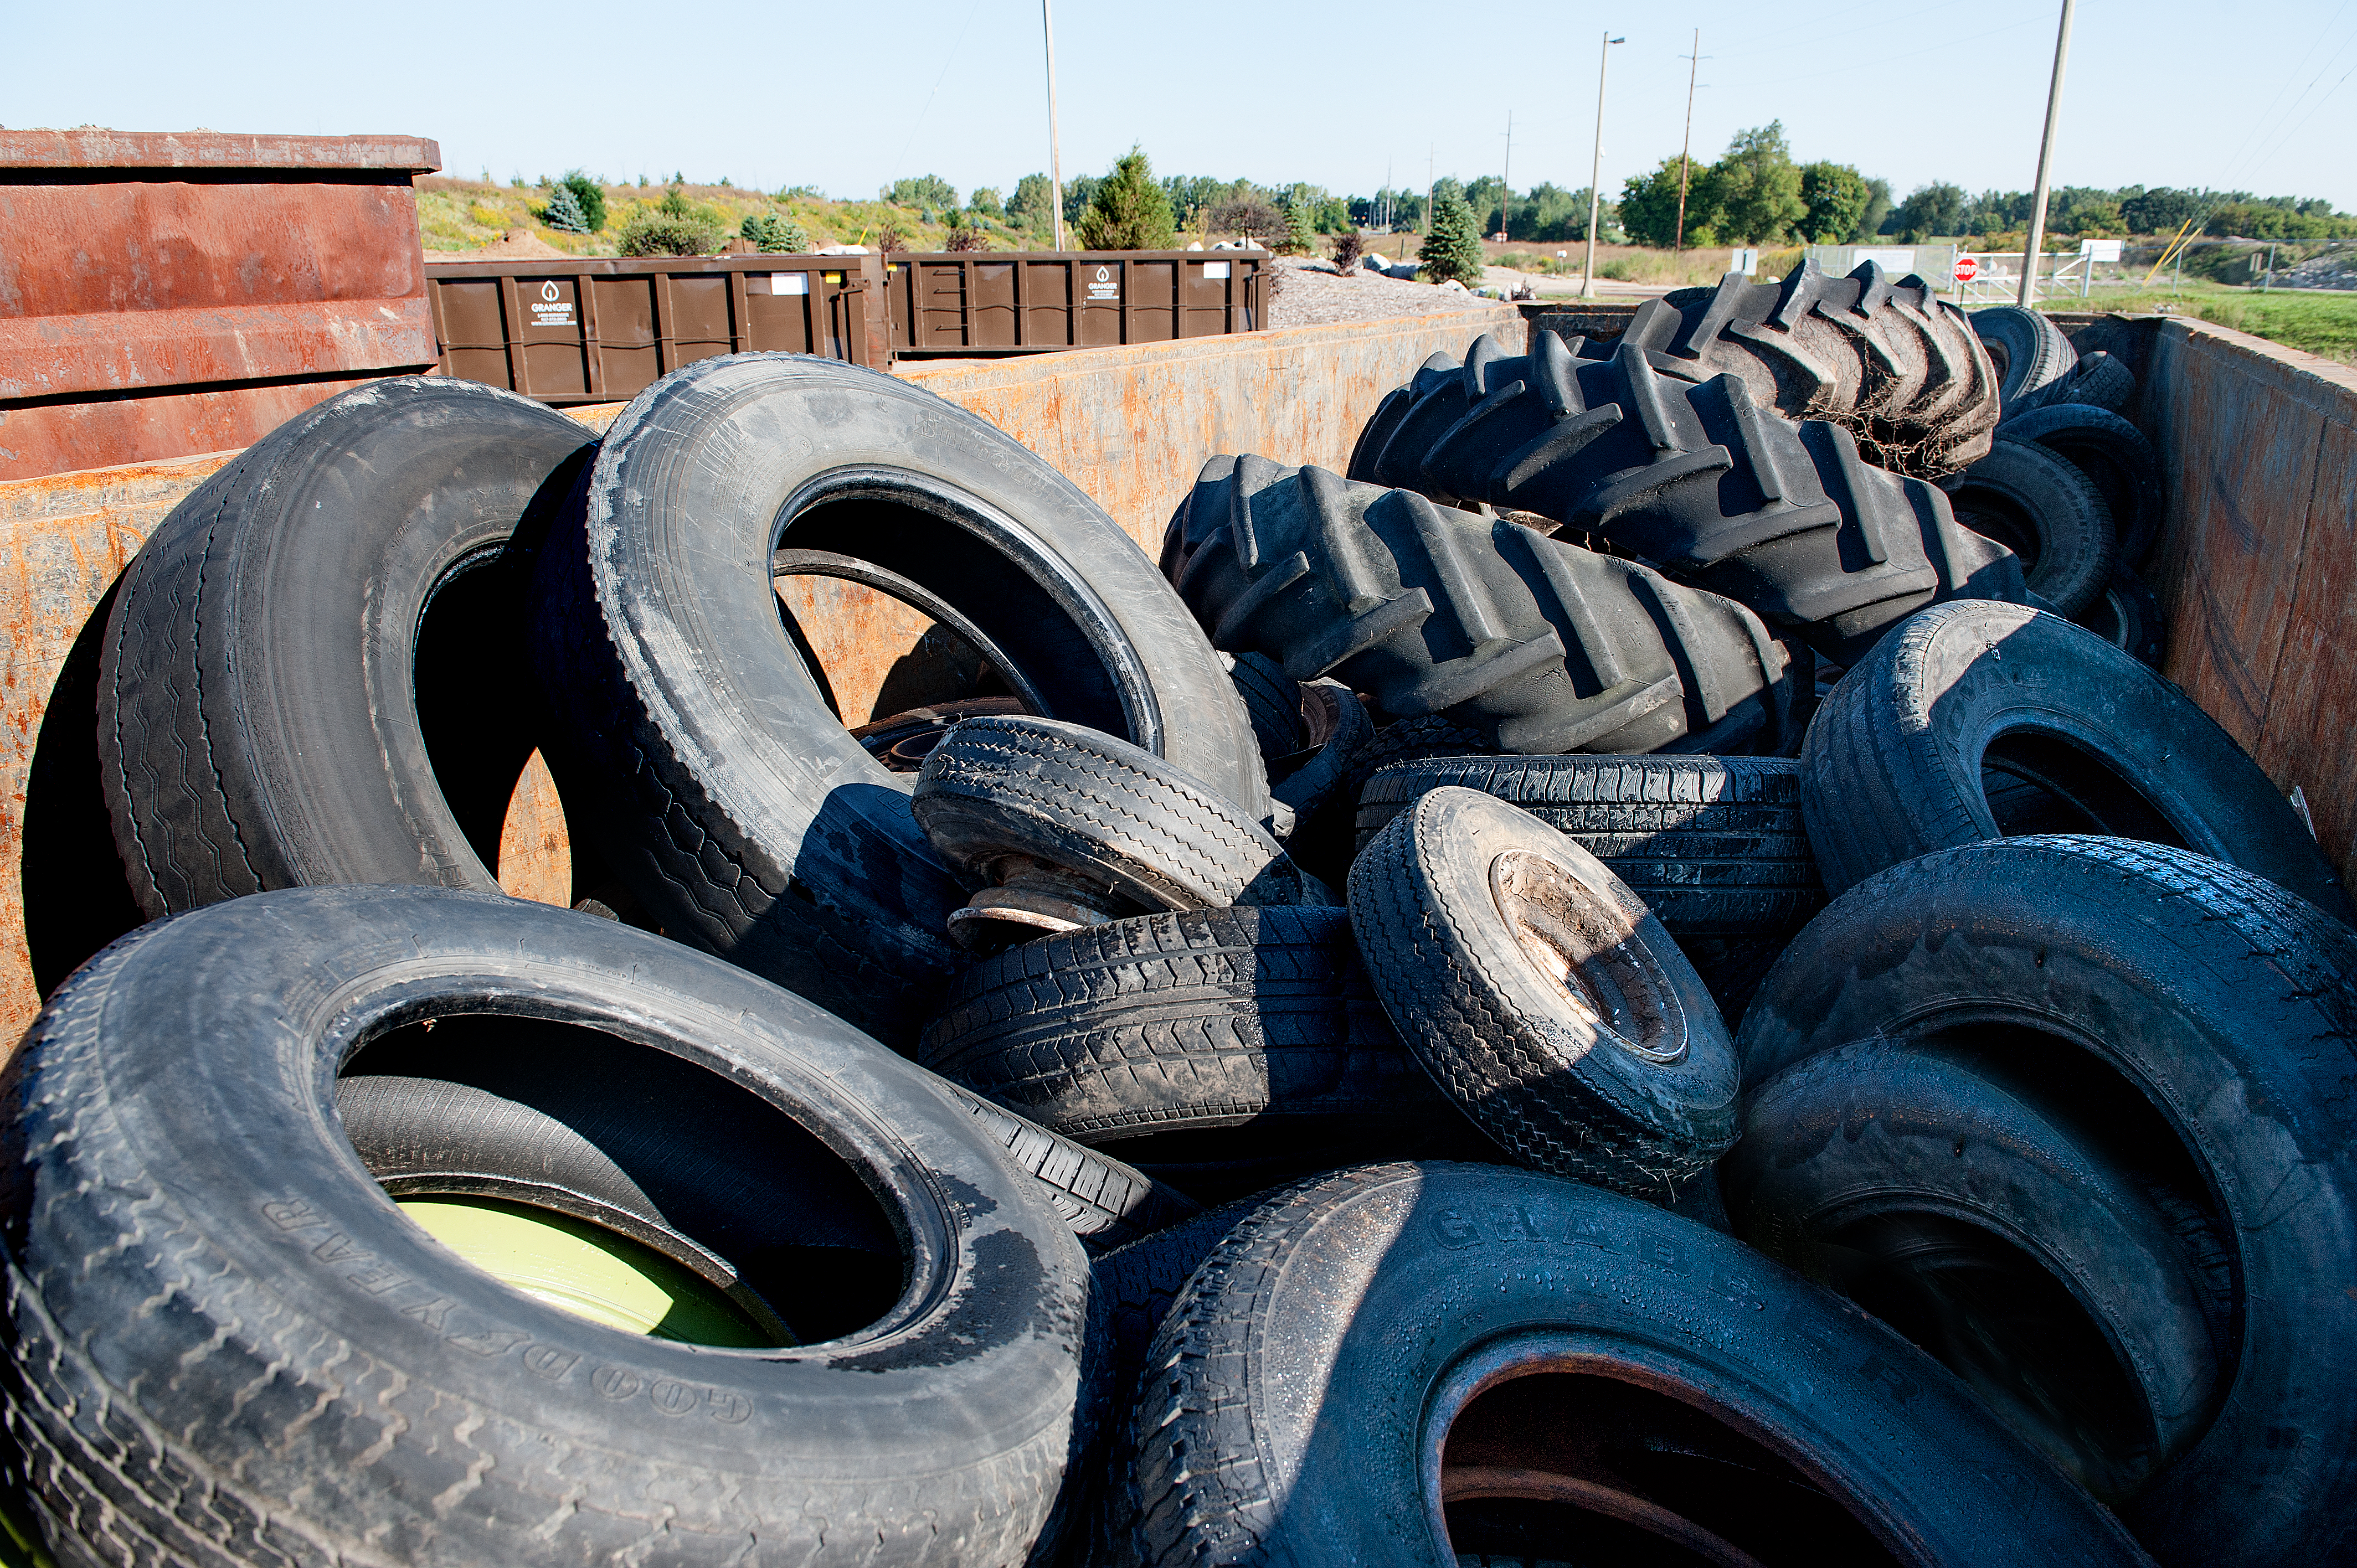 How to Get Rid of Old Tires | Granger